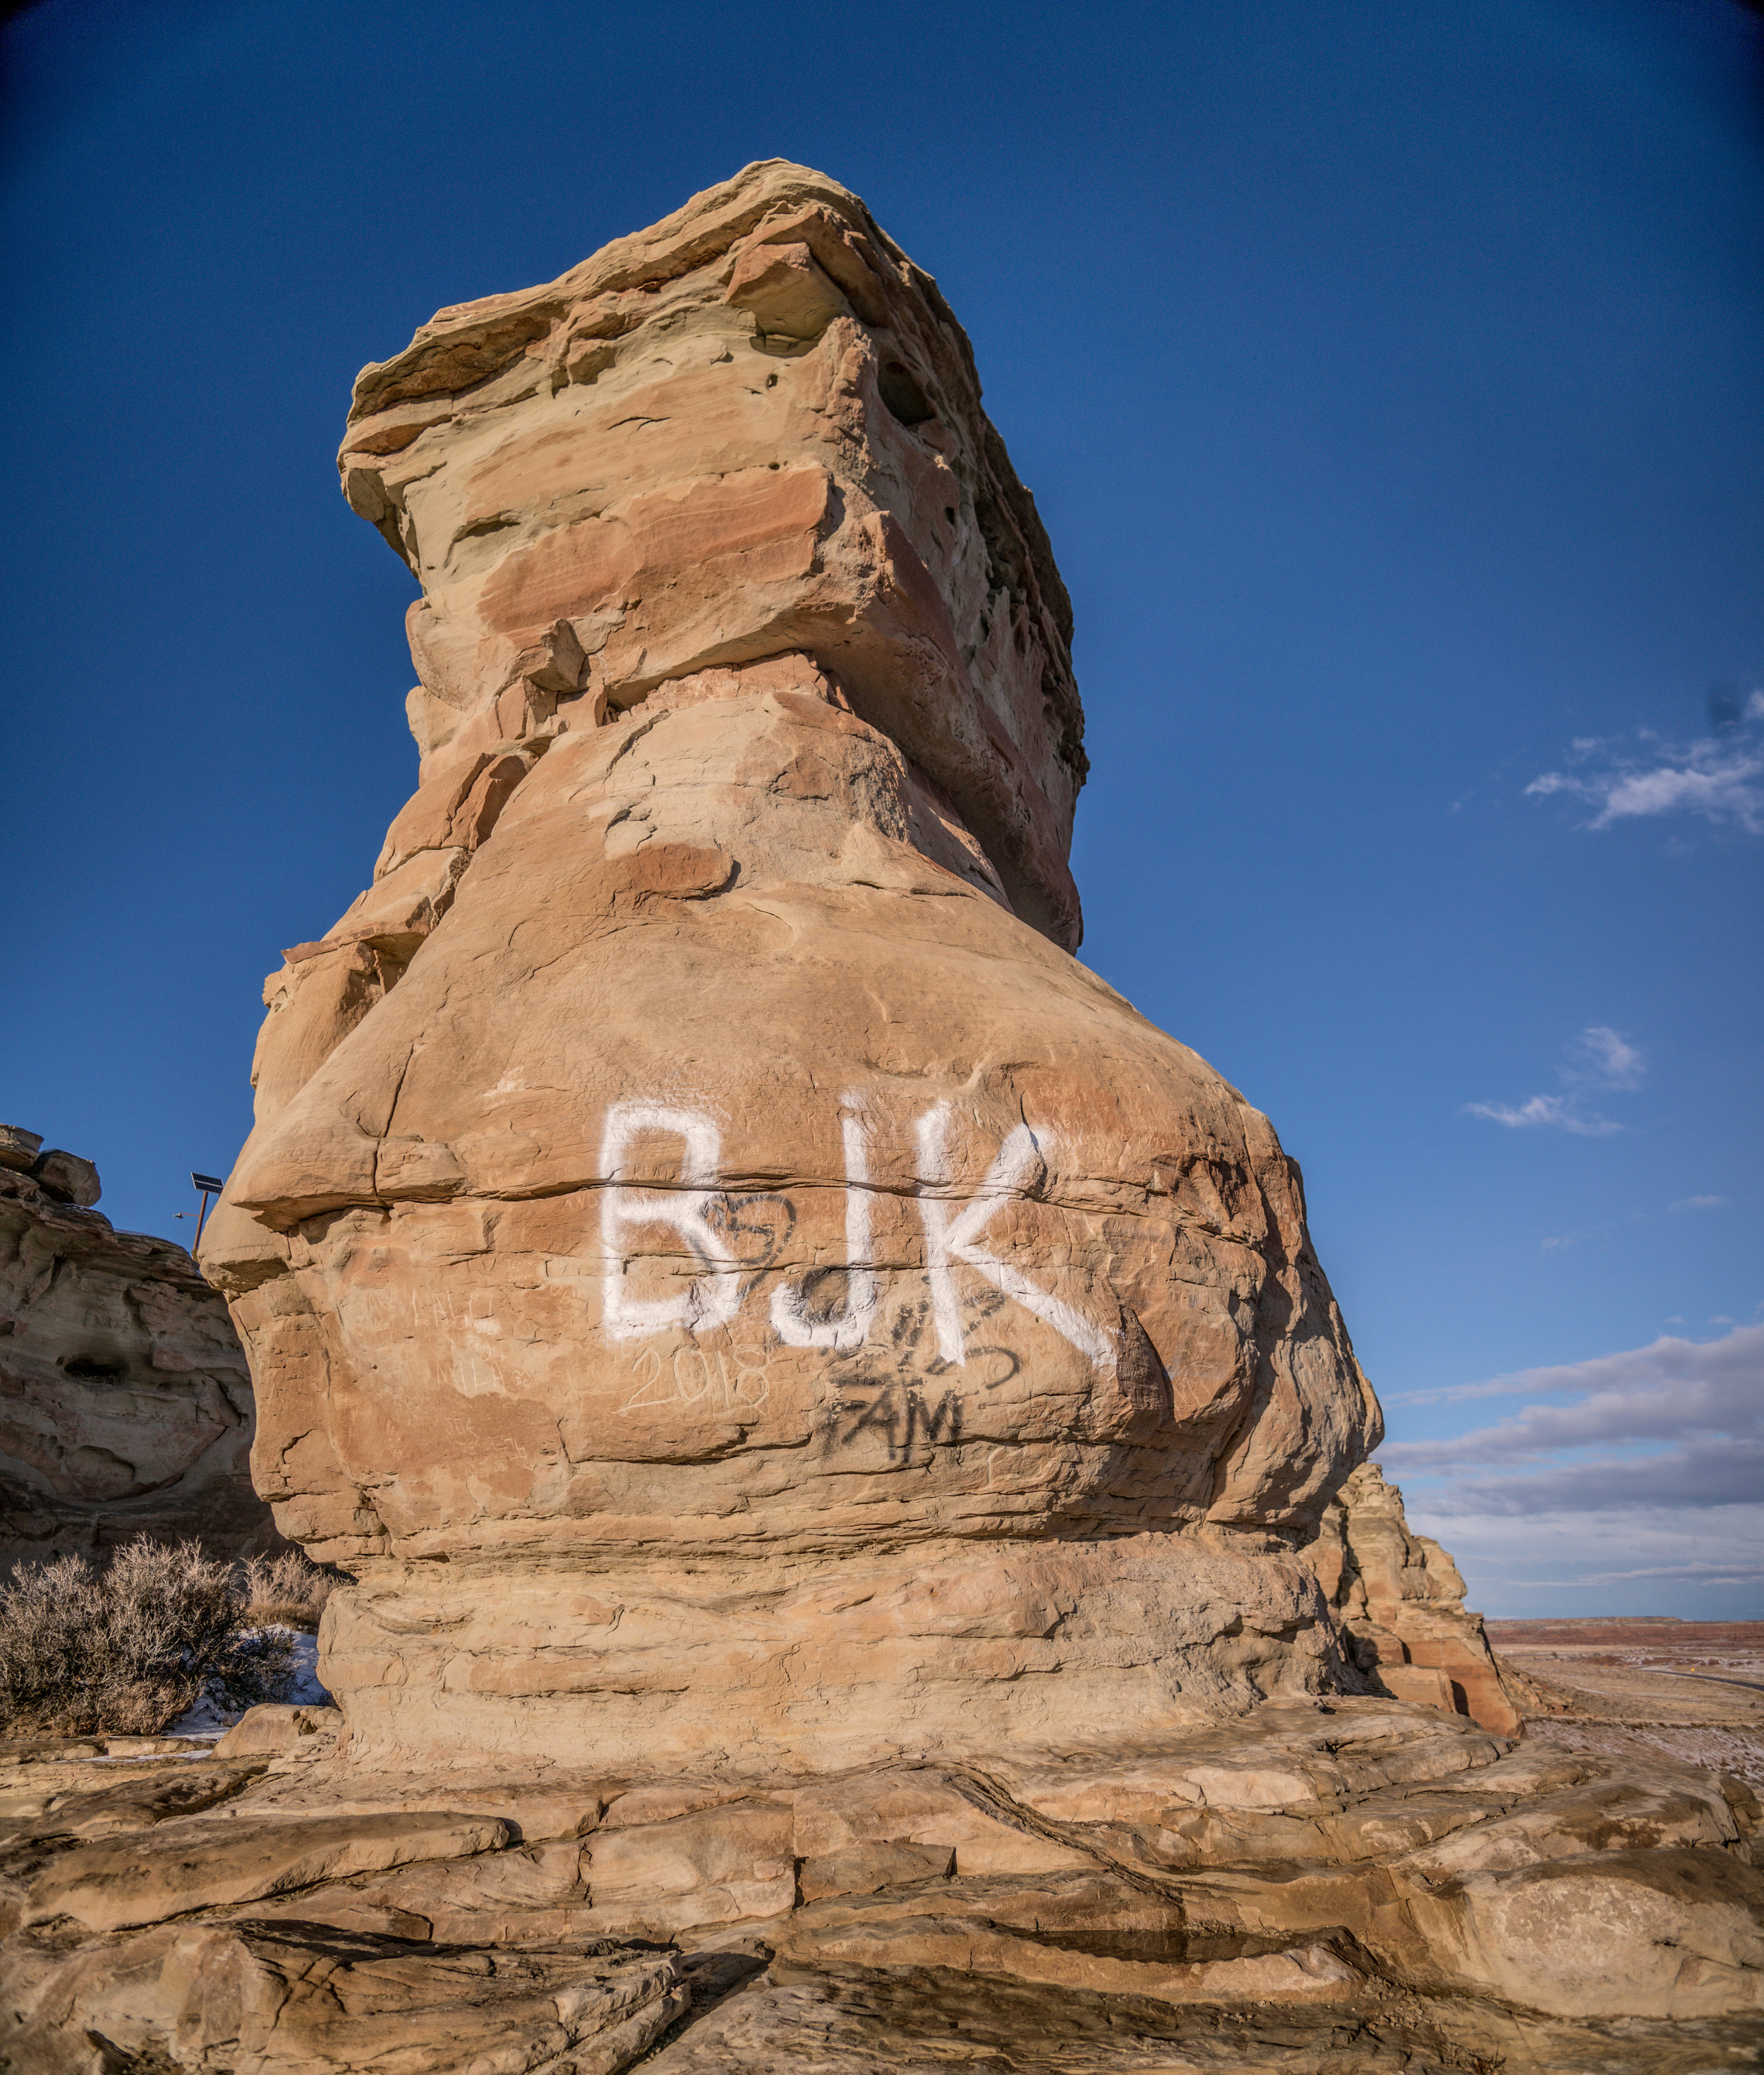 Graffiti is routine and happens often. This photo was taken January, 19th. Notice 2018 already carved into the formation.